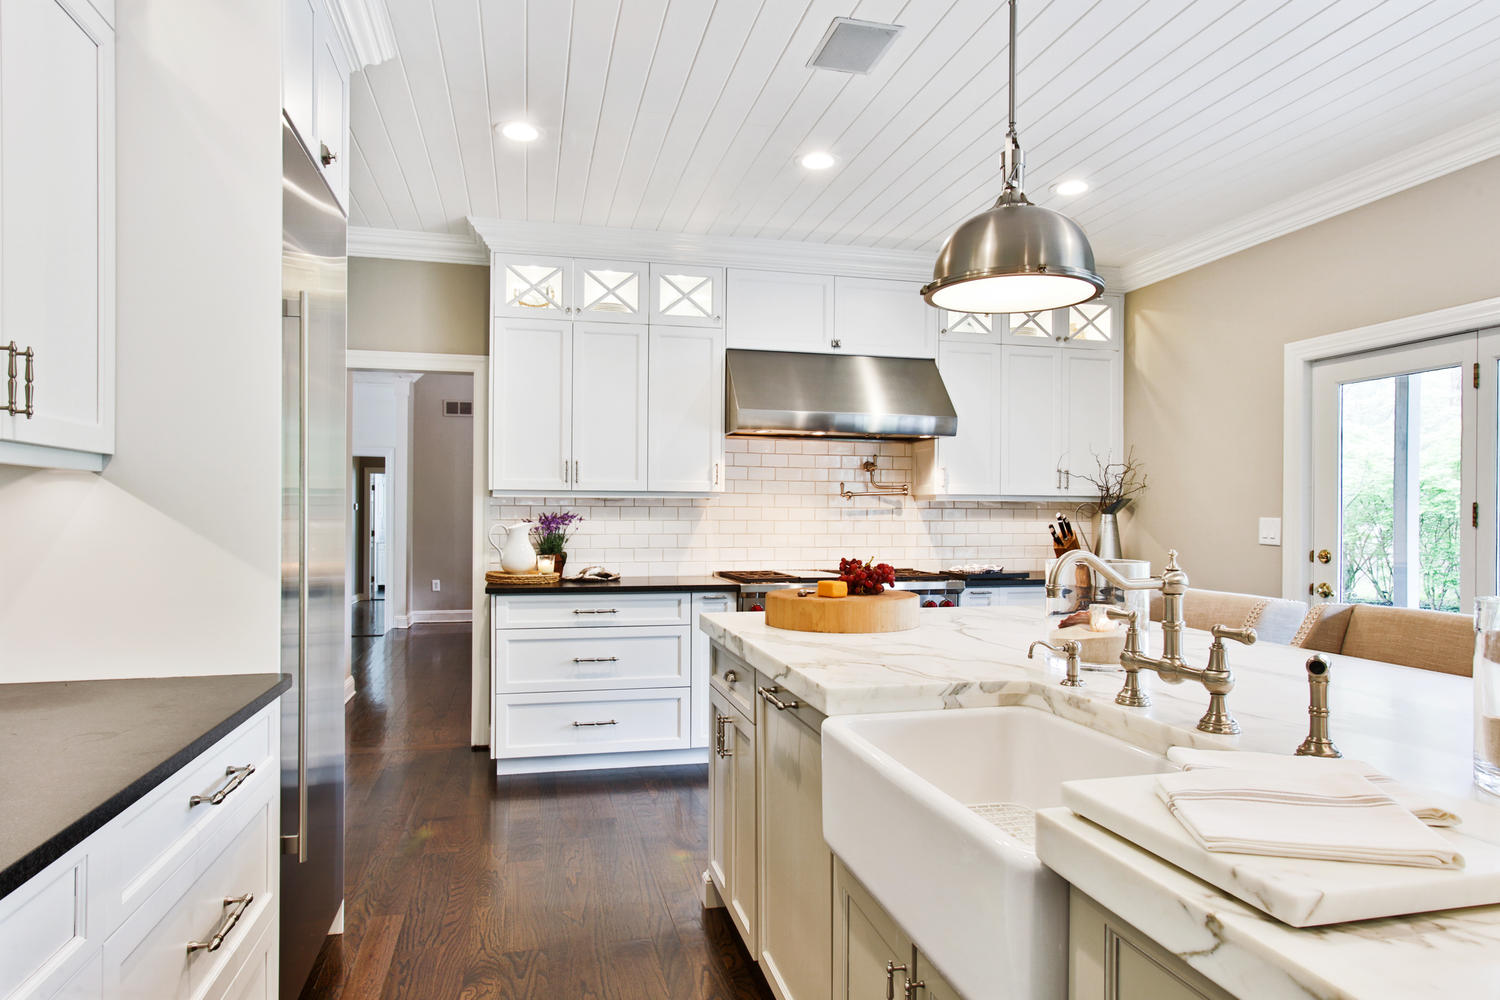 The white kitchen perfected wall township new jersey by design line kitchens - Design line kitchens ...